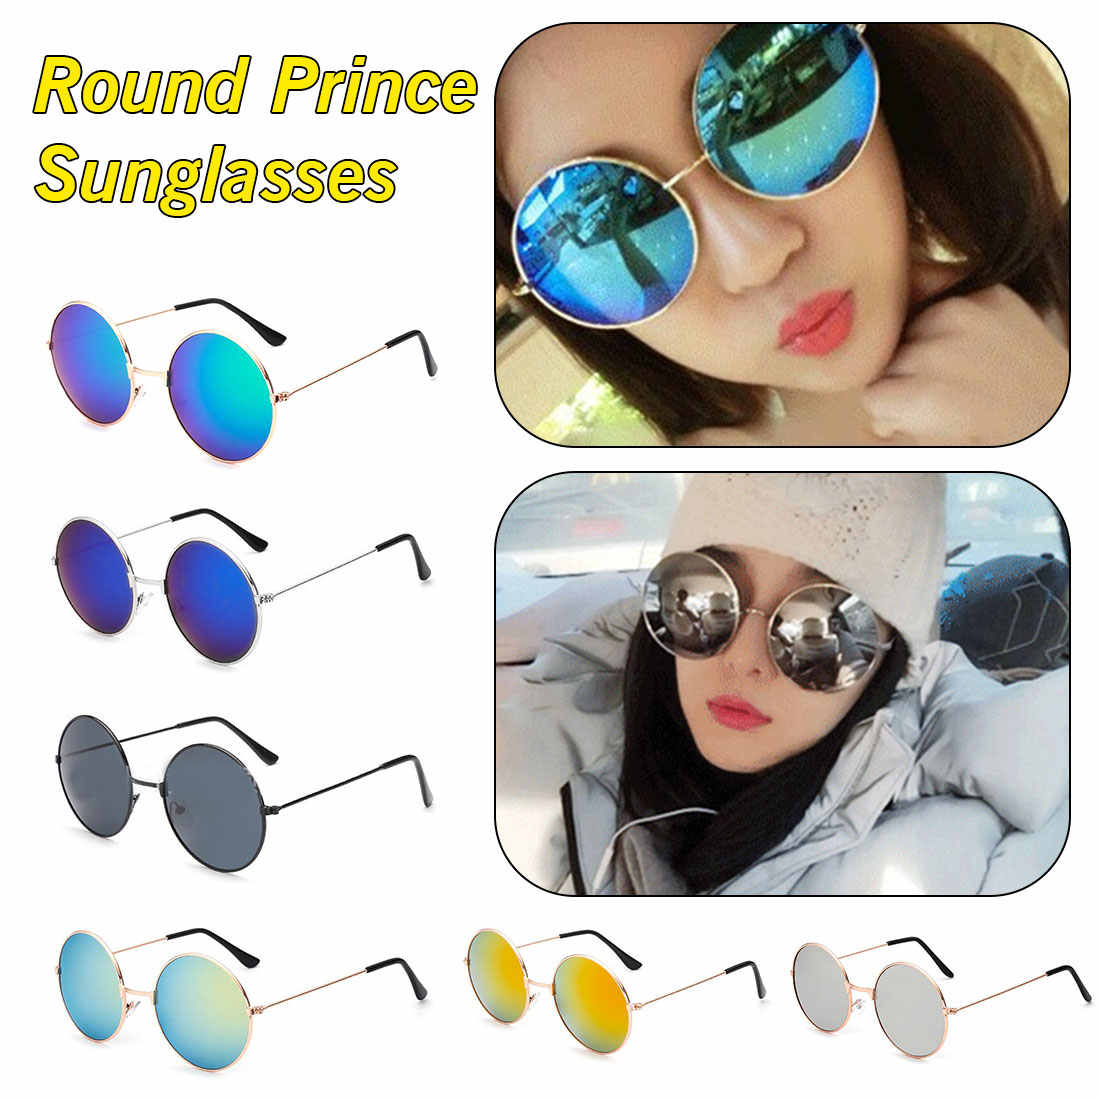 5b8d8ea1a1a5 Feminine Round Prince Sunglass New Women Men Alloy Round Sunglasses Male  Female Metal Sun Glasses Gold